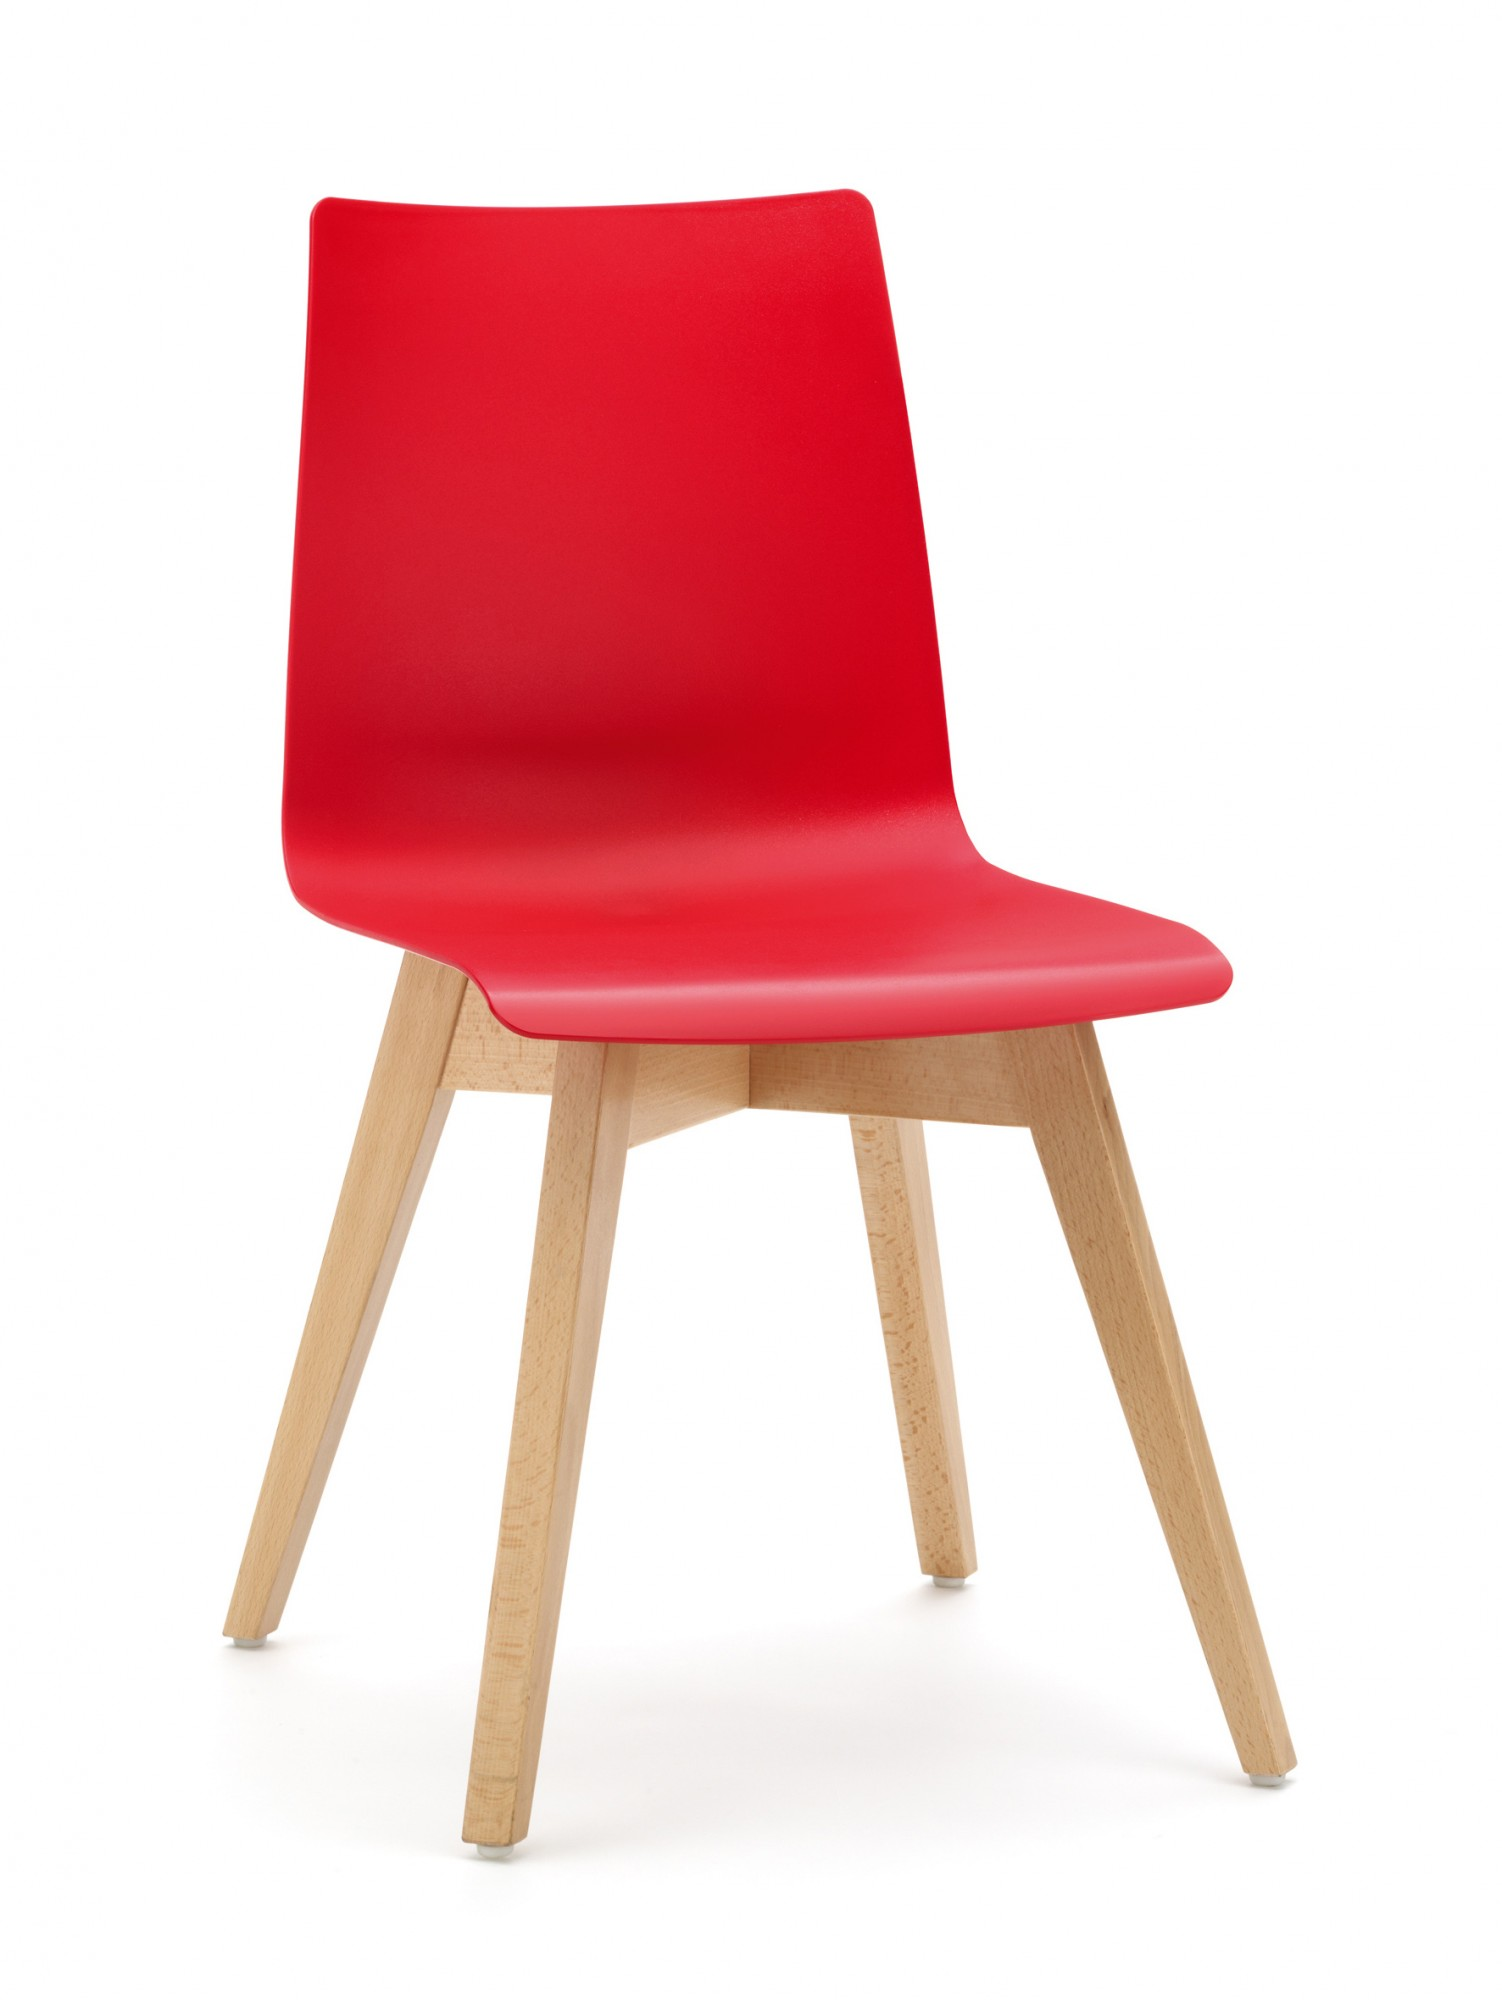 Designer Plastic Chairs Benny Online Reality